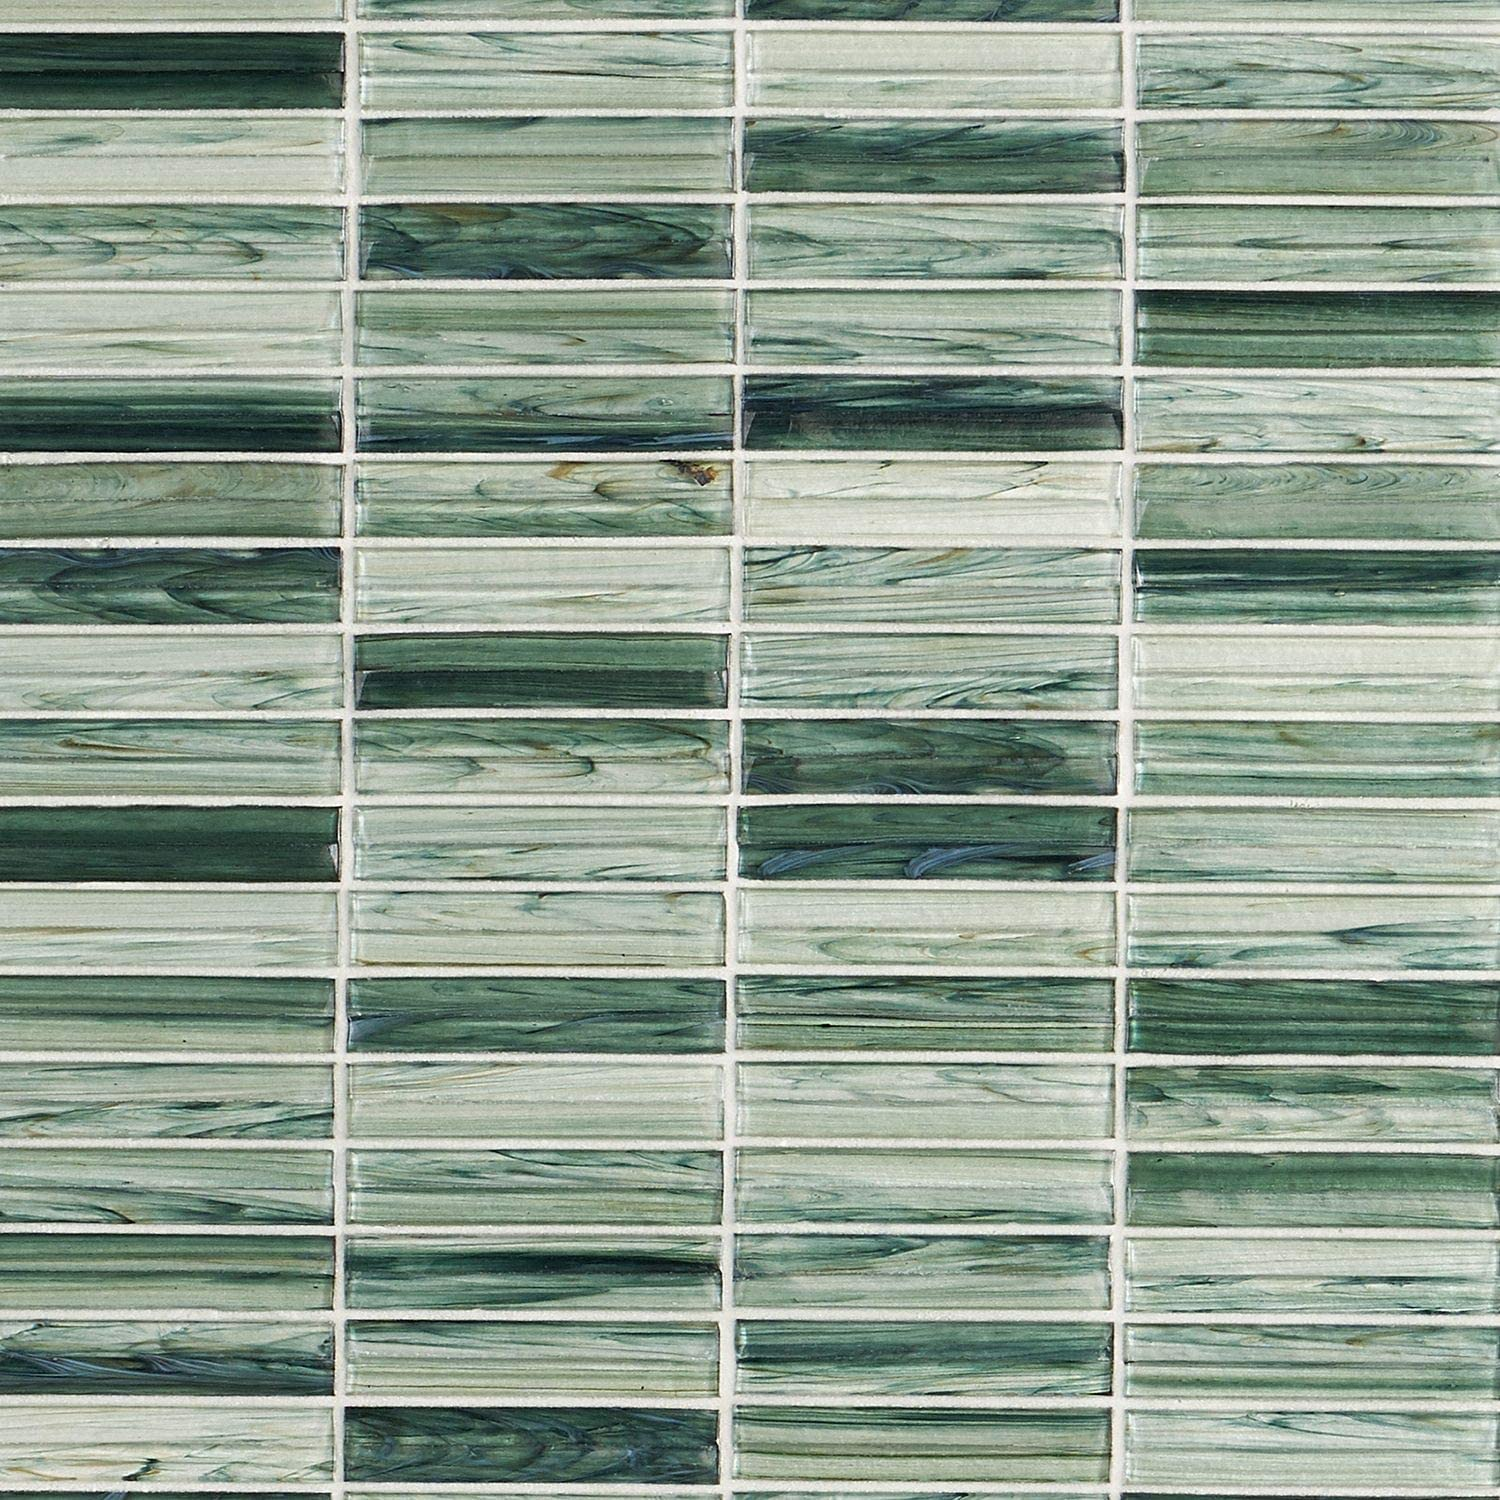 Tara Green 11 61 In X 11 73 In Stacked Glass Mosaic Tile 0 95 Sq Ft Sheet Amazon Com